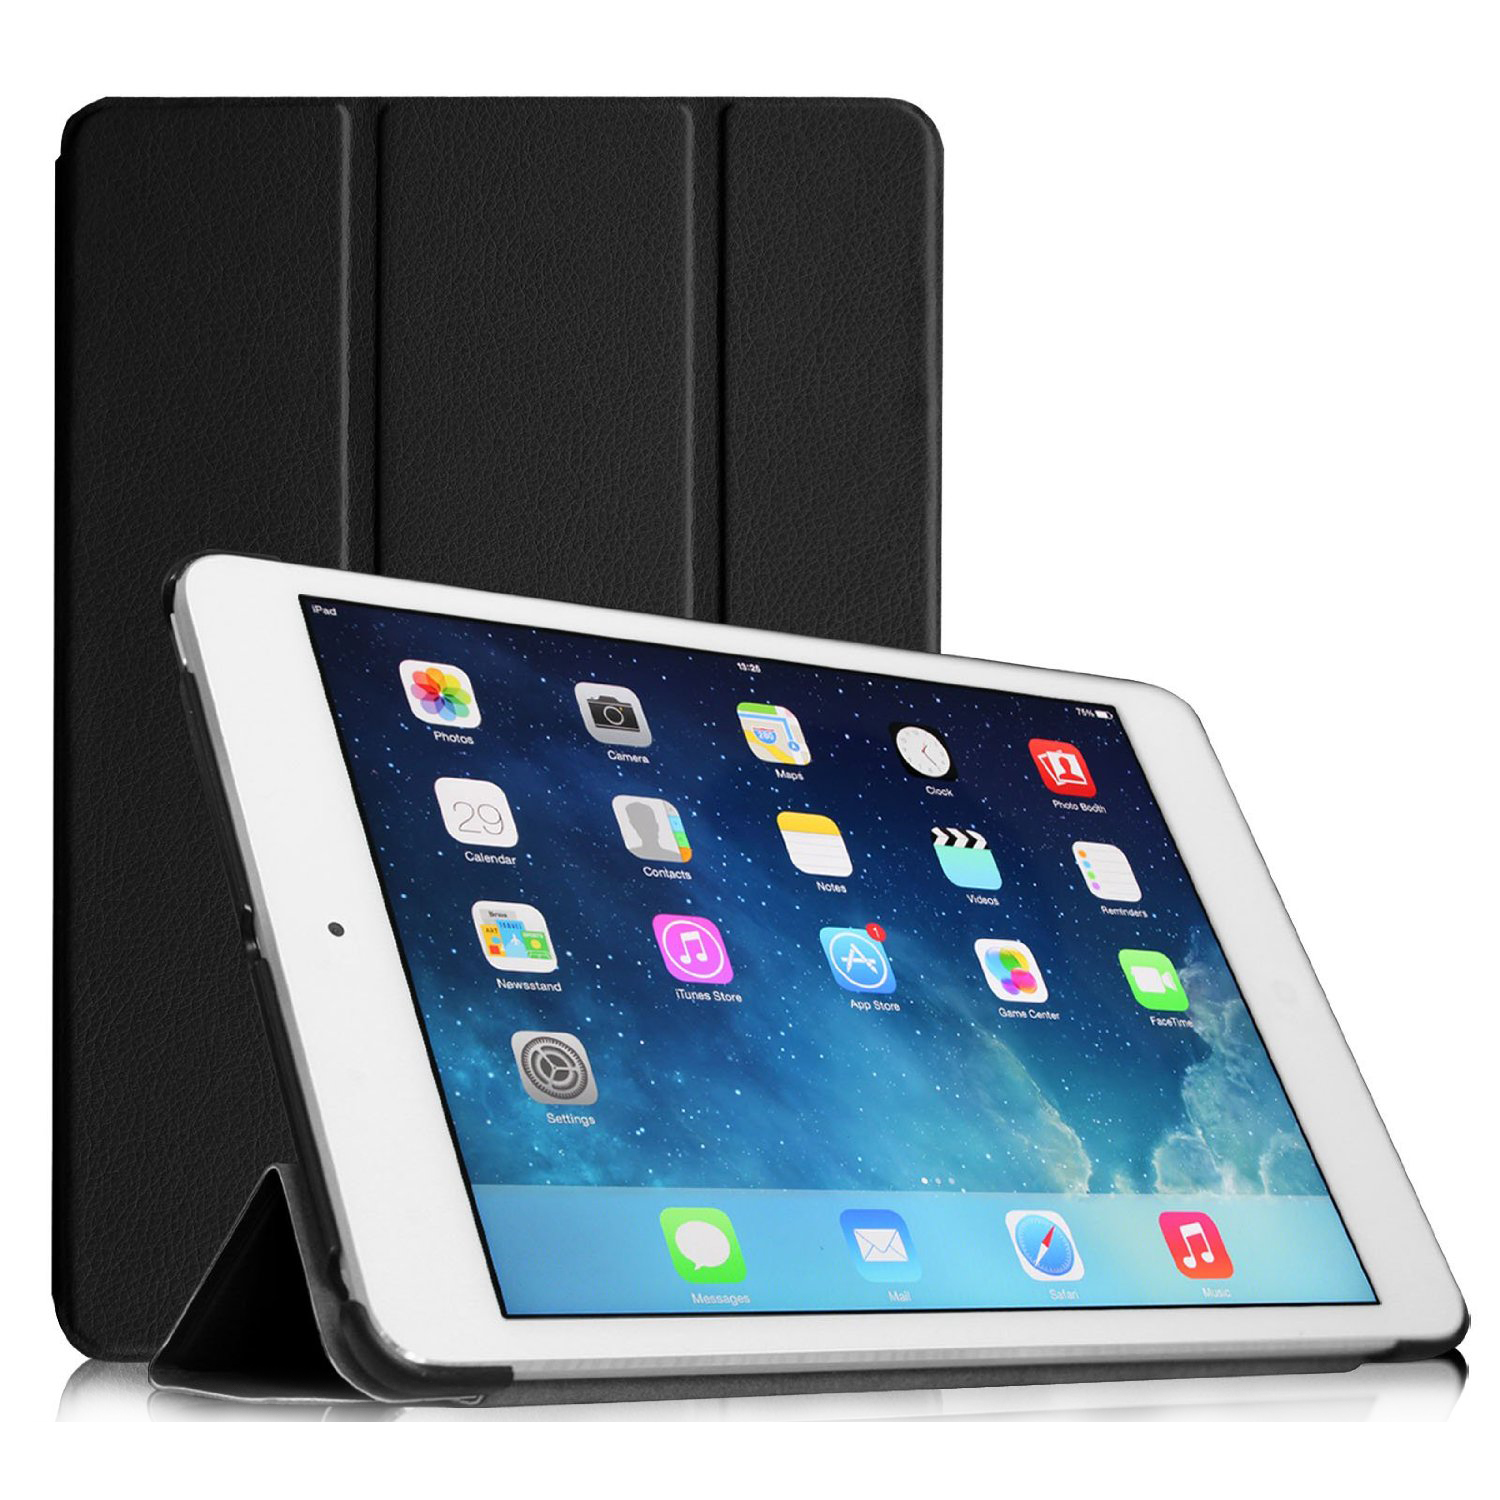 iPad mini 3 / iPad mini 2 / iPad mini Case - Fintie SlimShell Cover with Auto Sleep/Wake